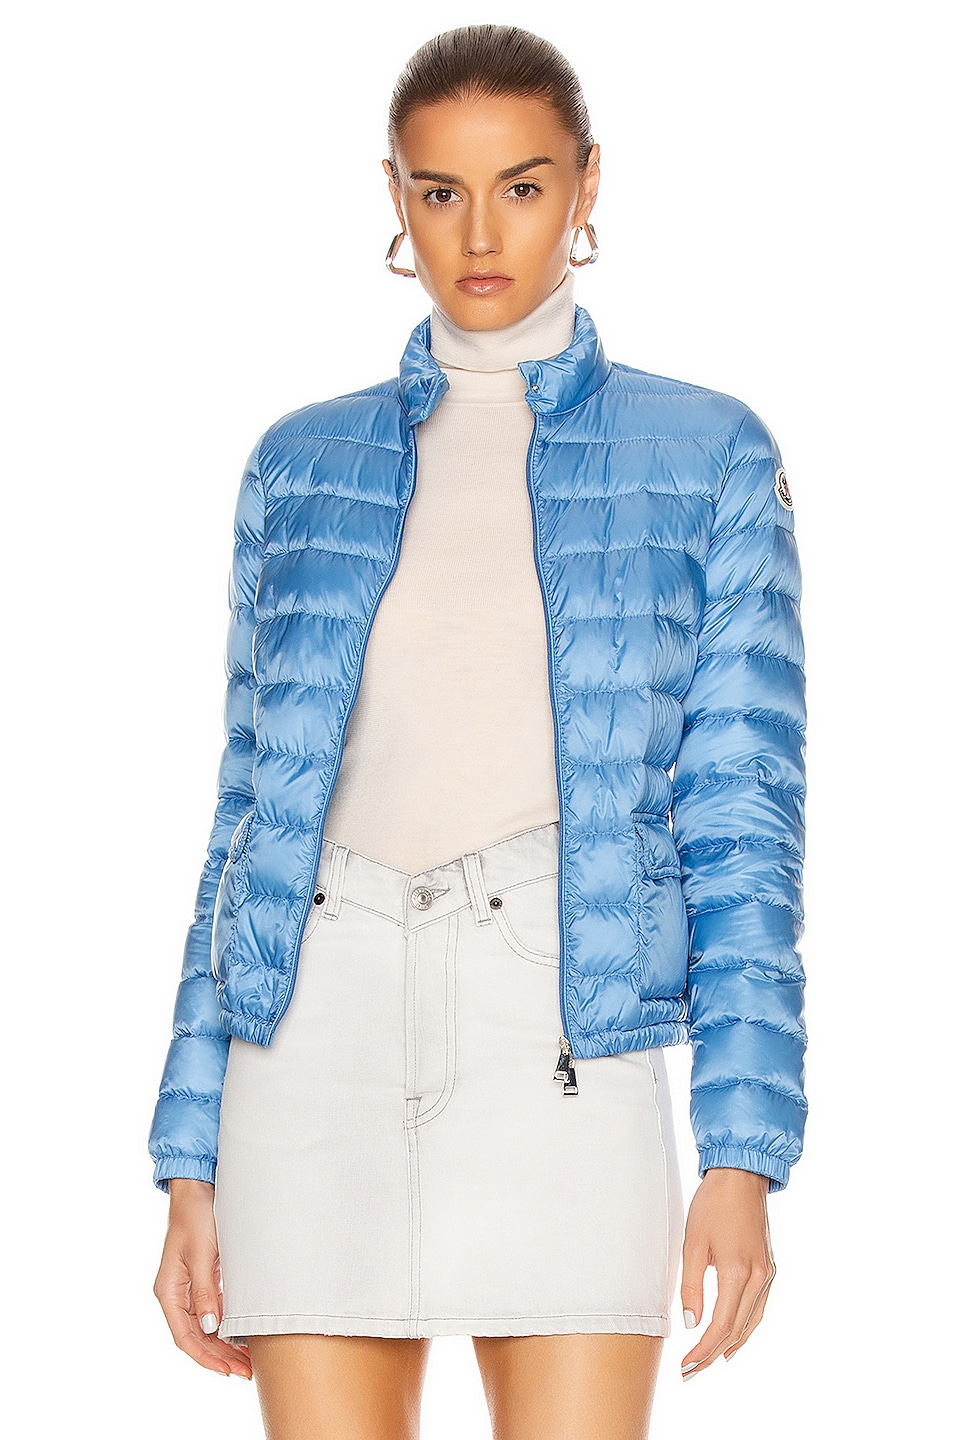 Image 1 of Moncler Lans Giubbotto Jacket in Royal Blue